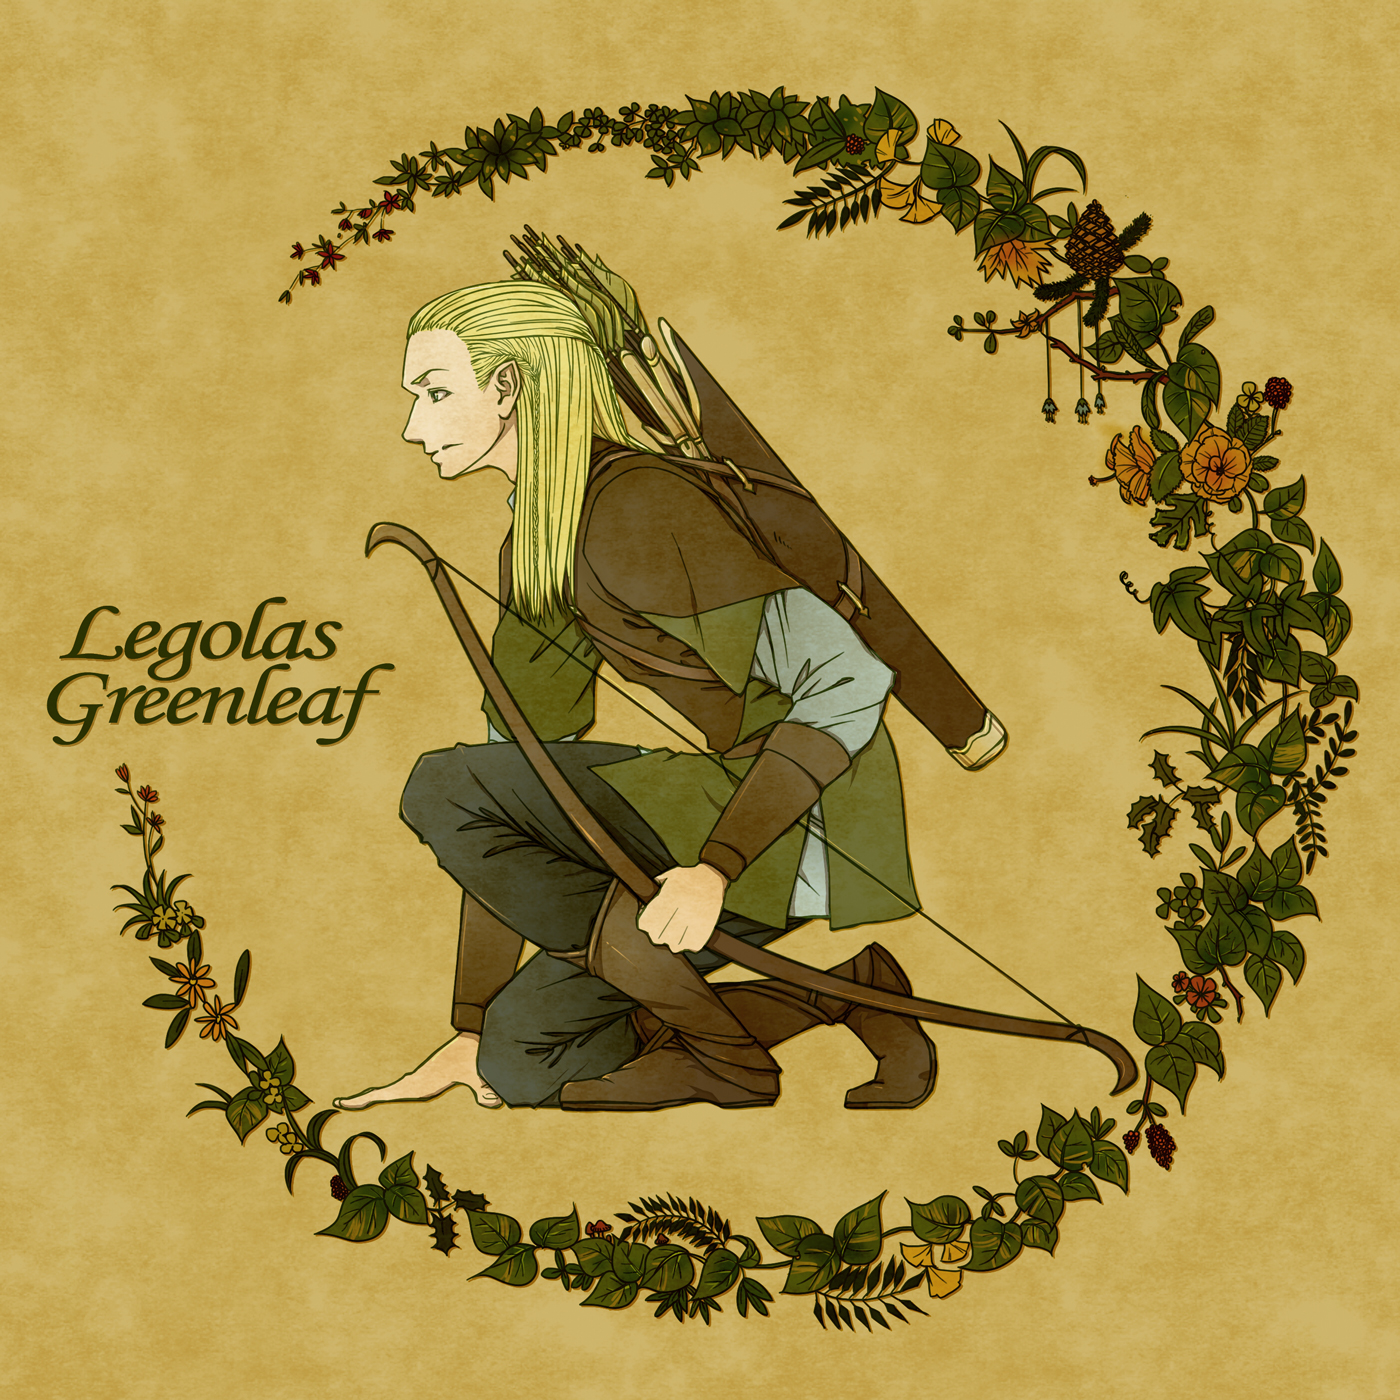 Legolas what did your elf eyes see